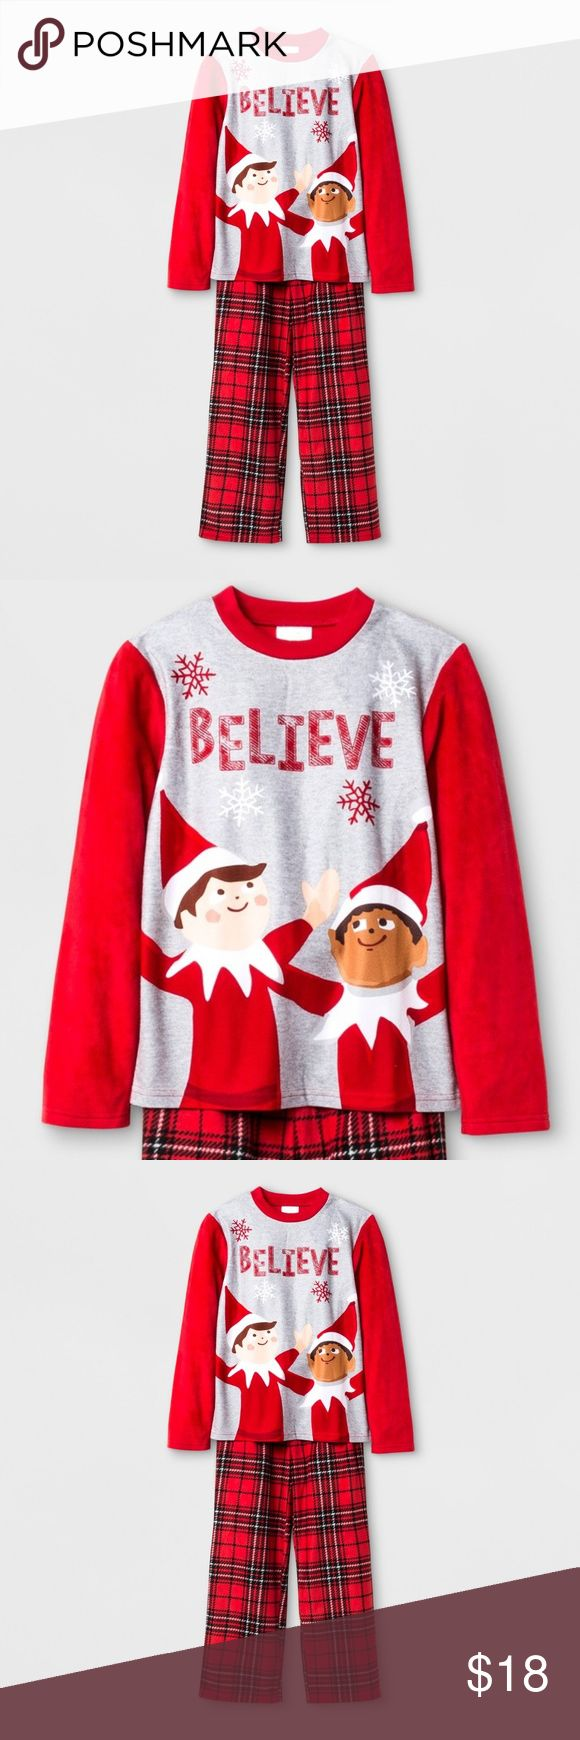 New ELF ON THE SHELF Fleece Pajama Set NWT Make sure the Elf can keep an eye on your boy throughout the night with the Elf on the Shelf Pajama Set. This adorable holiday pajama set features classic plaid pajama bottoms and long-sleeve top with not one, but two elves to report back to Santa. Great to give as a gift, this winter pajama set even comes with a coordinating gift bag to keep it all together.  size L new with tags color: red  @cjrose25  Be ready for the holiday season. Bundle your…